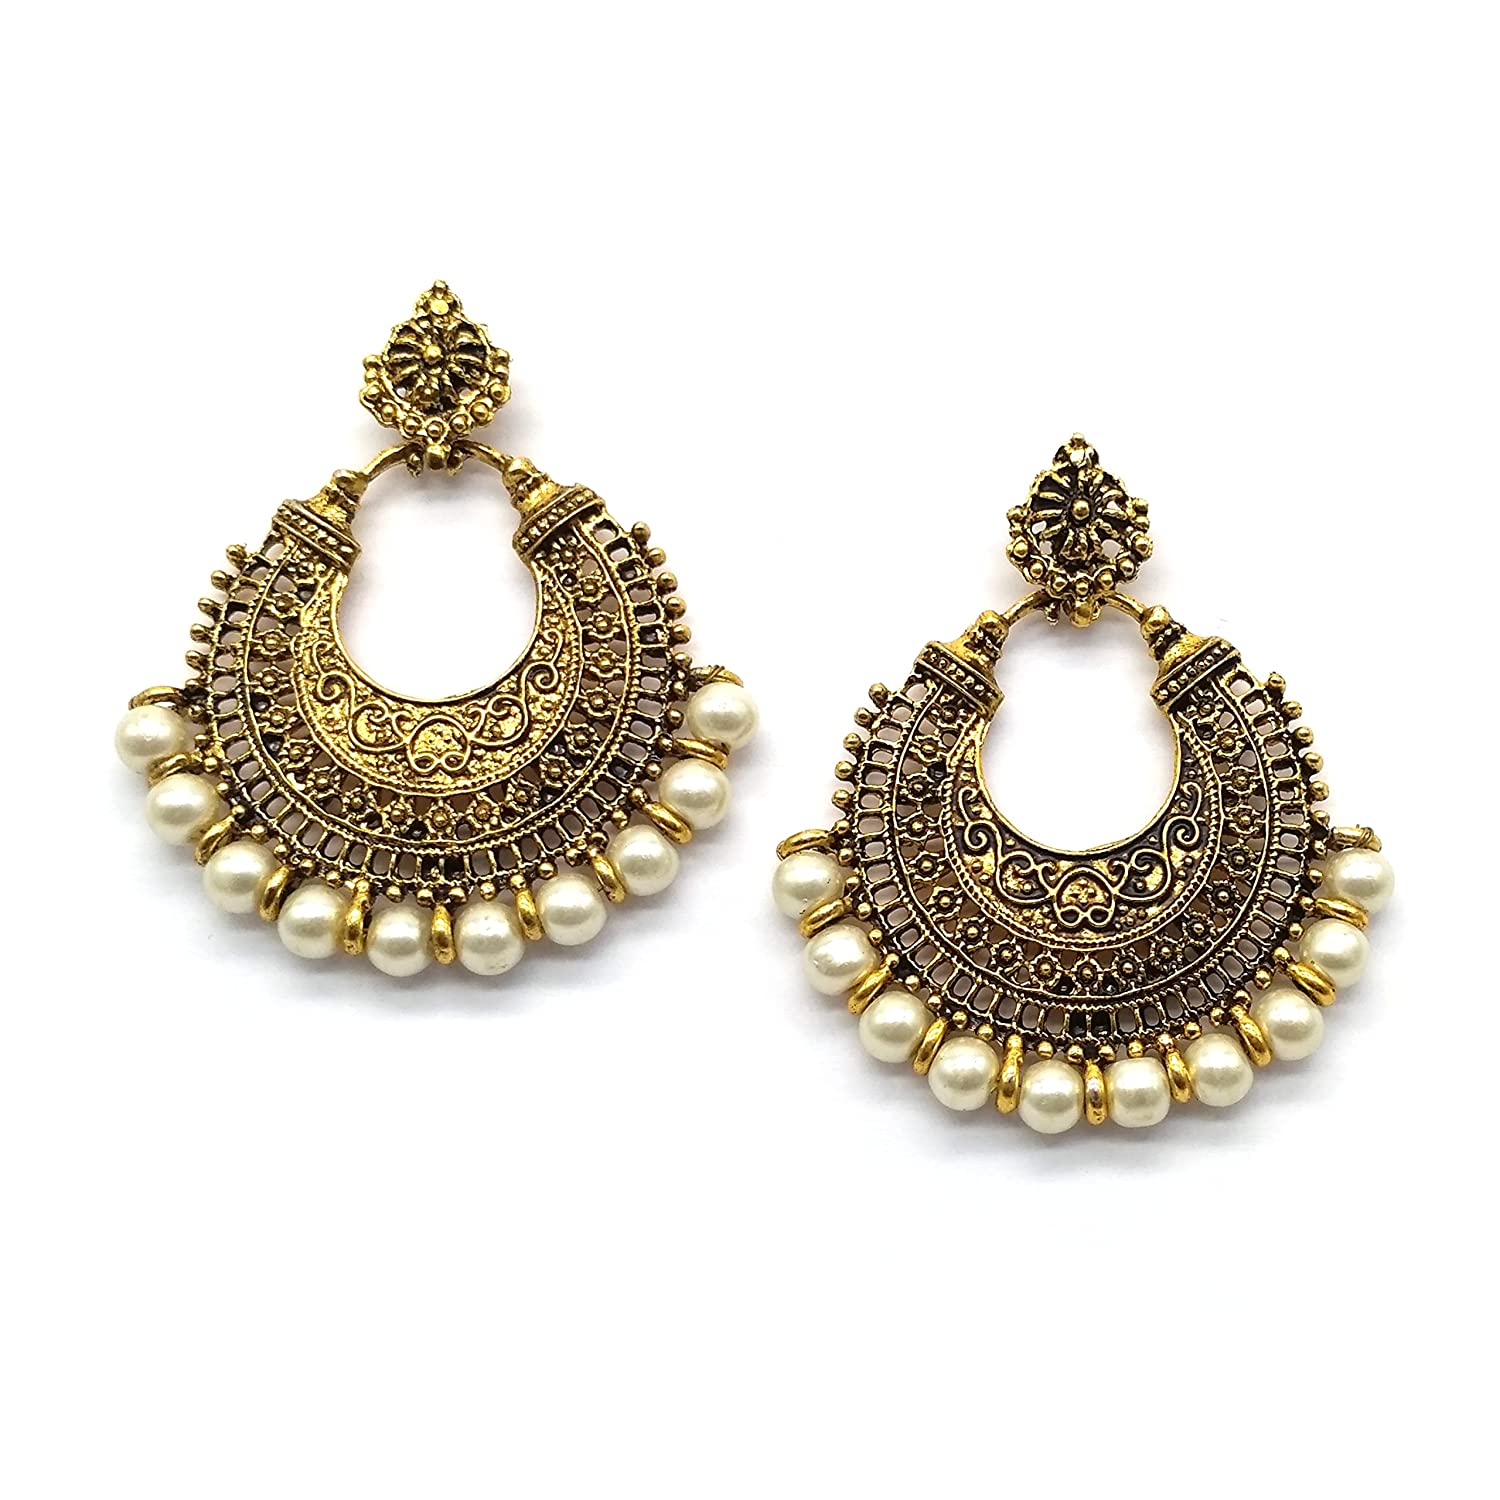 aac825bfc iKraft Oxidized Chandbali Earrings with White Beads German Silver Plated  Antique Gold Finish Chandelier Earrings for Girl and Women: Amazon.in:  Jewellery